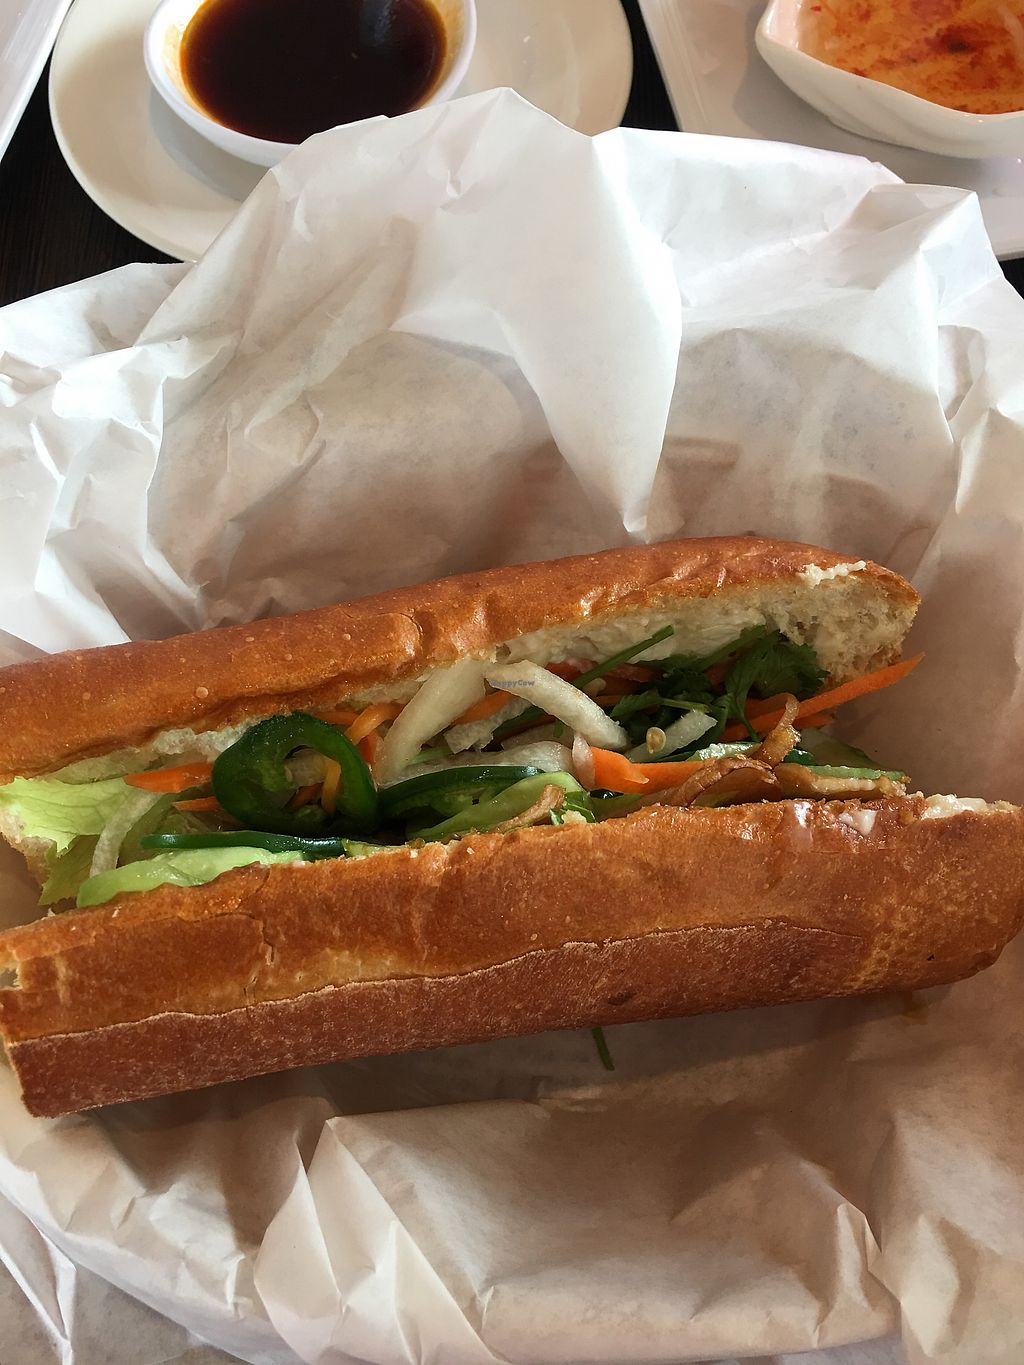 "Photo of VeggiEAT Xpress  by <a href=""/members/profile/lvasquared"">lvasquared</a> <br/>Half a mushroom Banh Mi <br/> March 17, 2018  - <a href='/contact/abuse/image/103584/372083'>Report</a>"